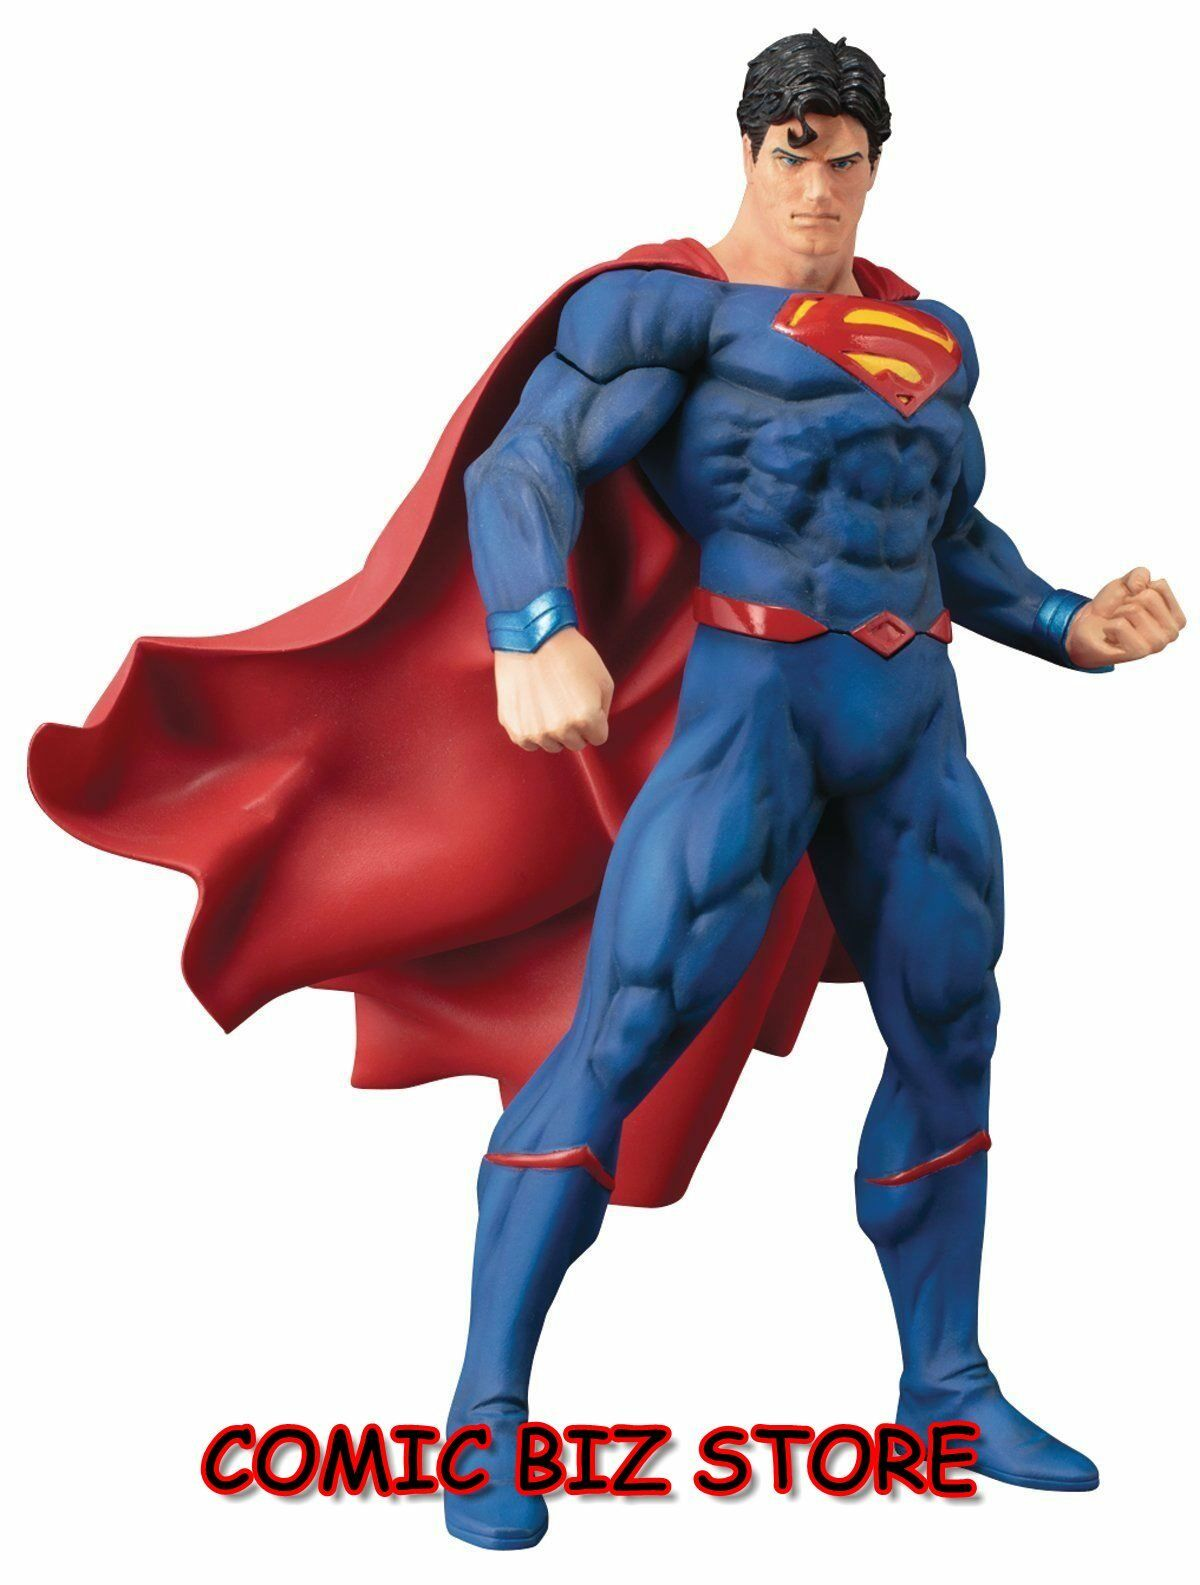 DC COMICS SUPERMAN REBIRTH ARTFX+ STATUE (2017) 1 10 SCALE FIGURE